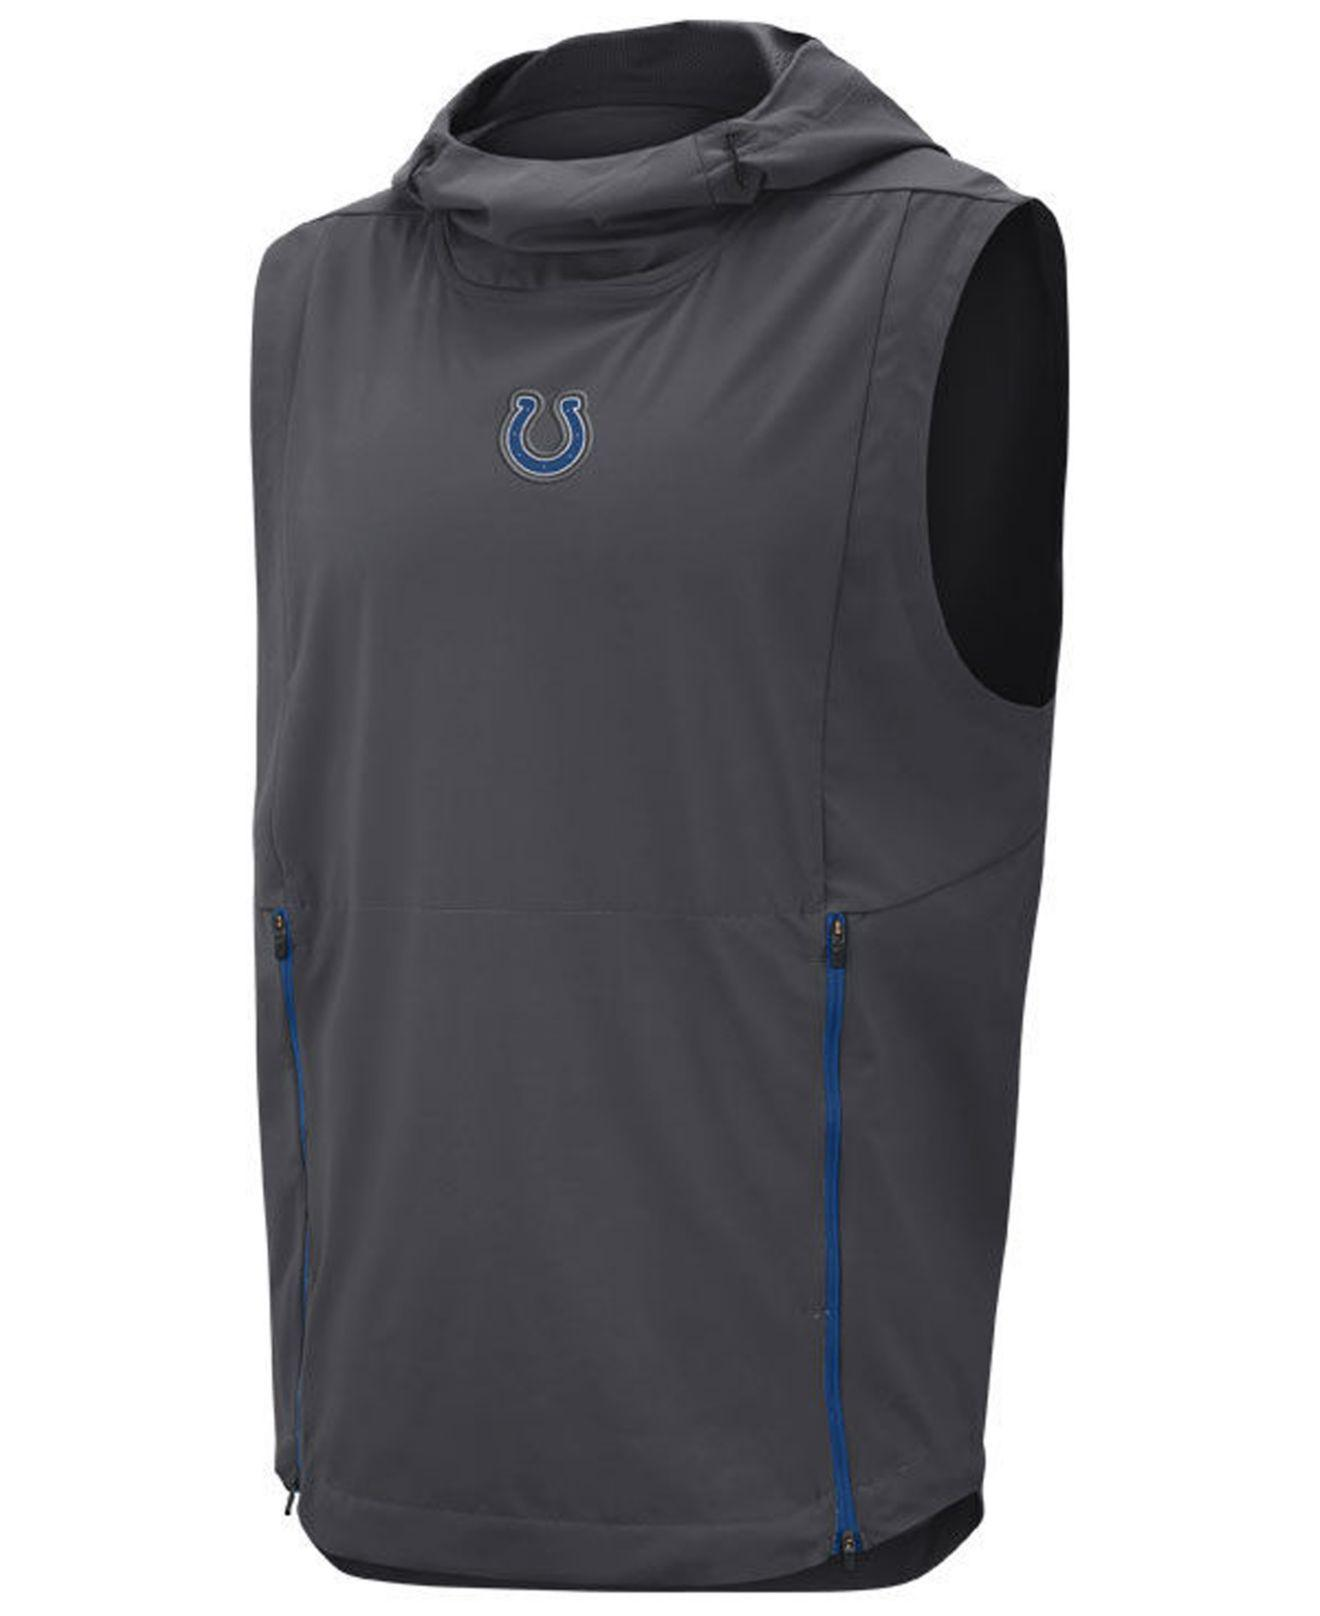 Wholesale Lyst Nike Indianapolis Colts Shield Fly Rush Vest for Men  free shipping oRqi62bh